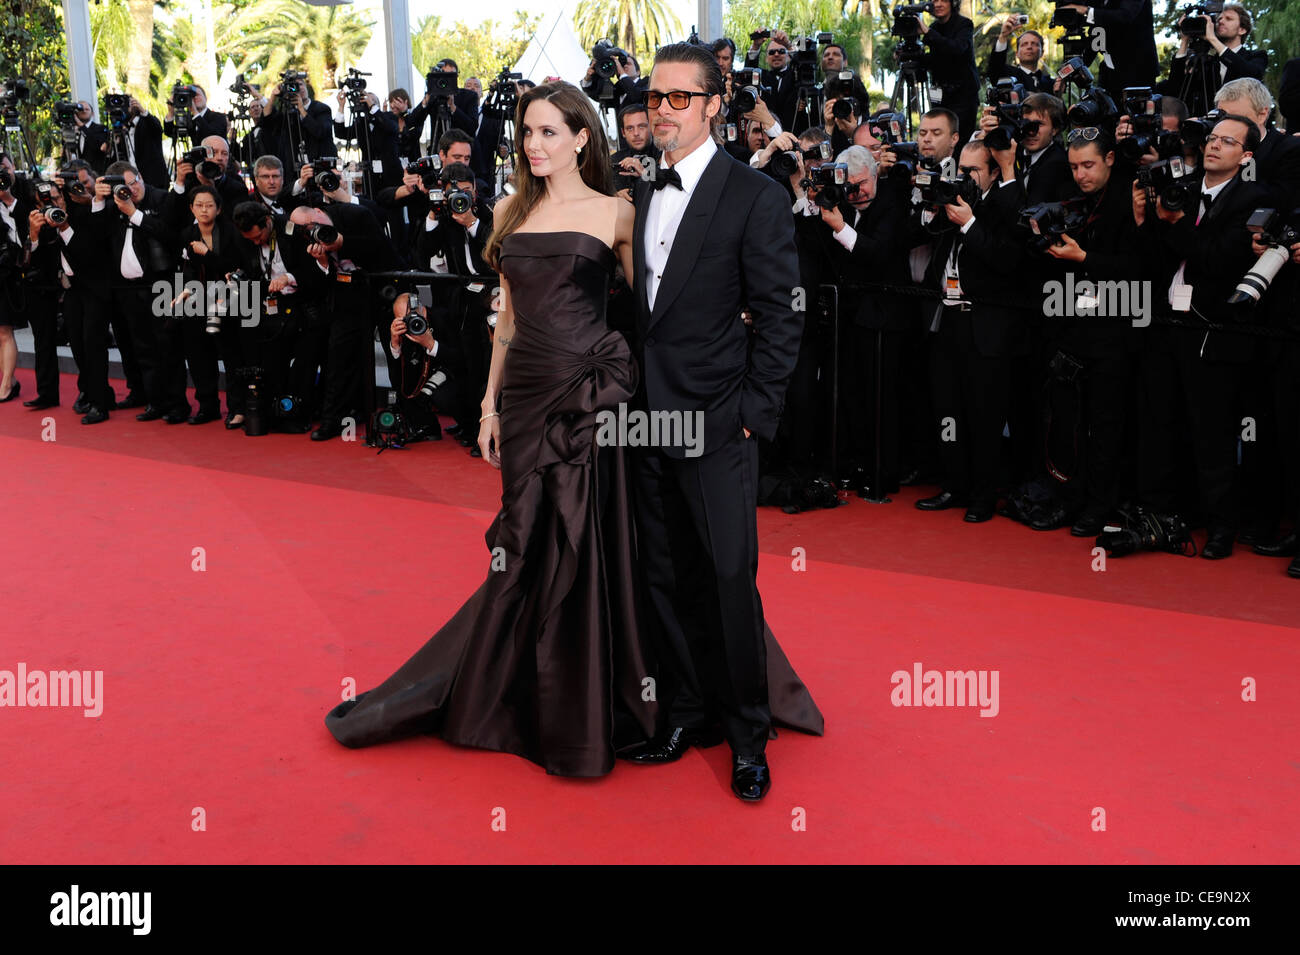 Angelina Jolie and Brad Pitt arrive for the screening of The Tree of Life at the 64th international film festival, Stock Photo